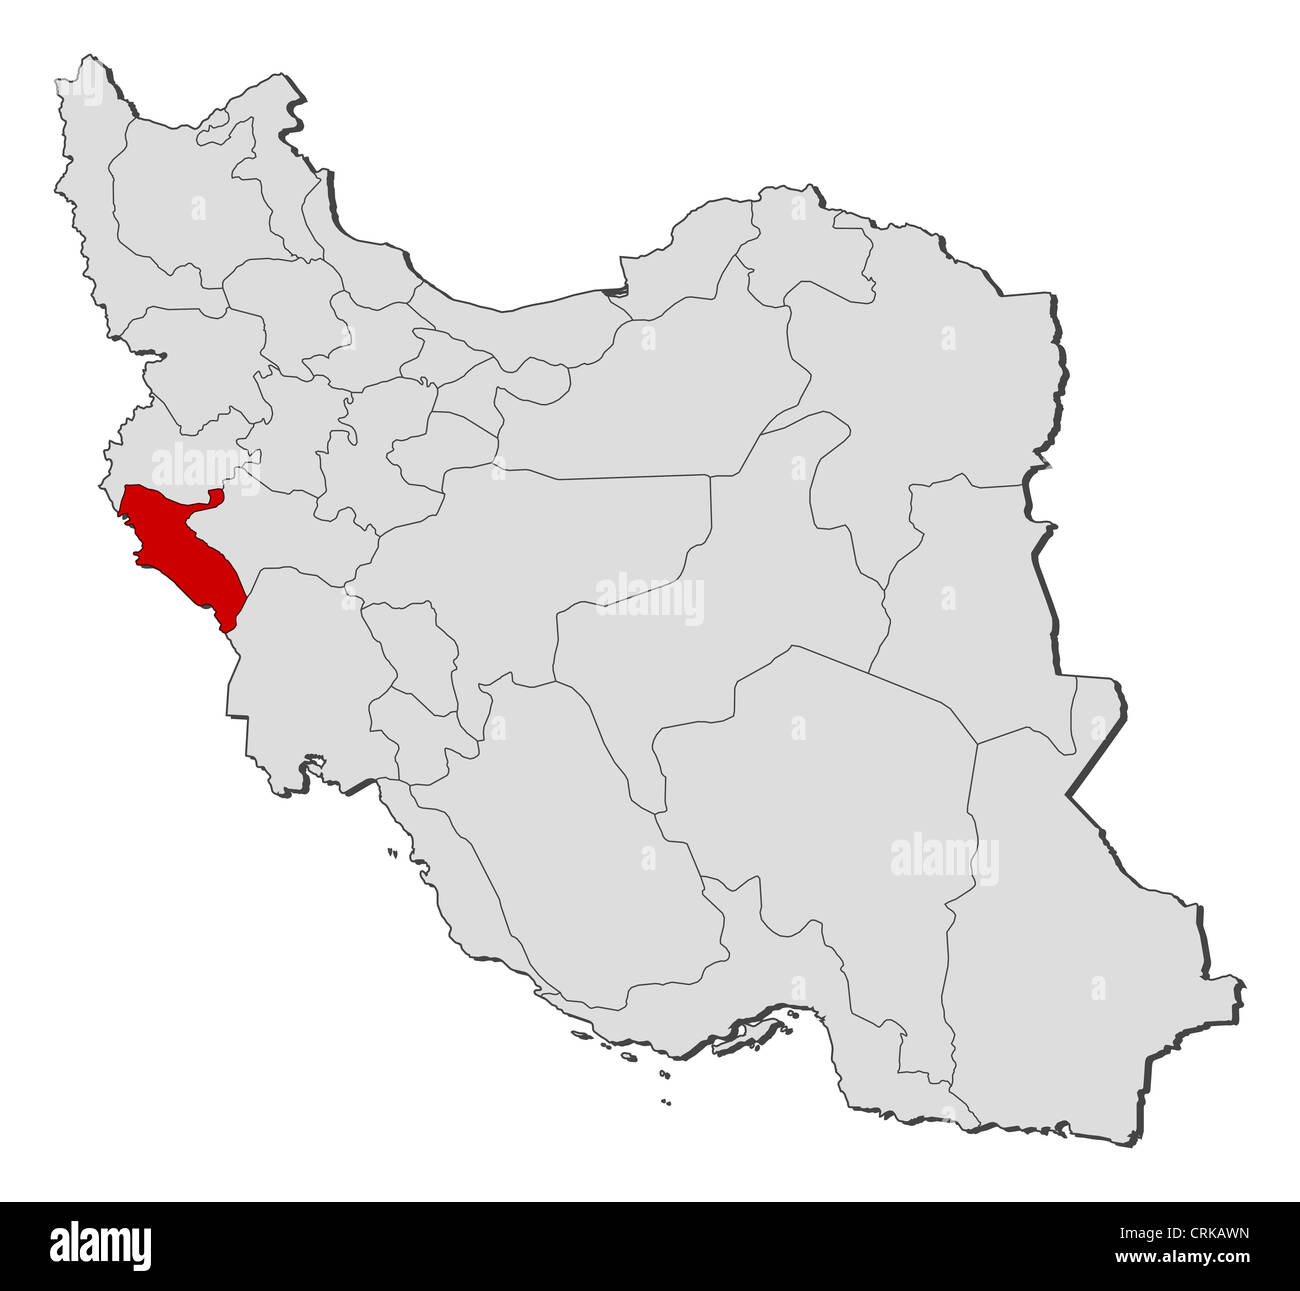 Ilam Iran Map Political map of Iran with the several provinces where Ilam is